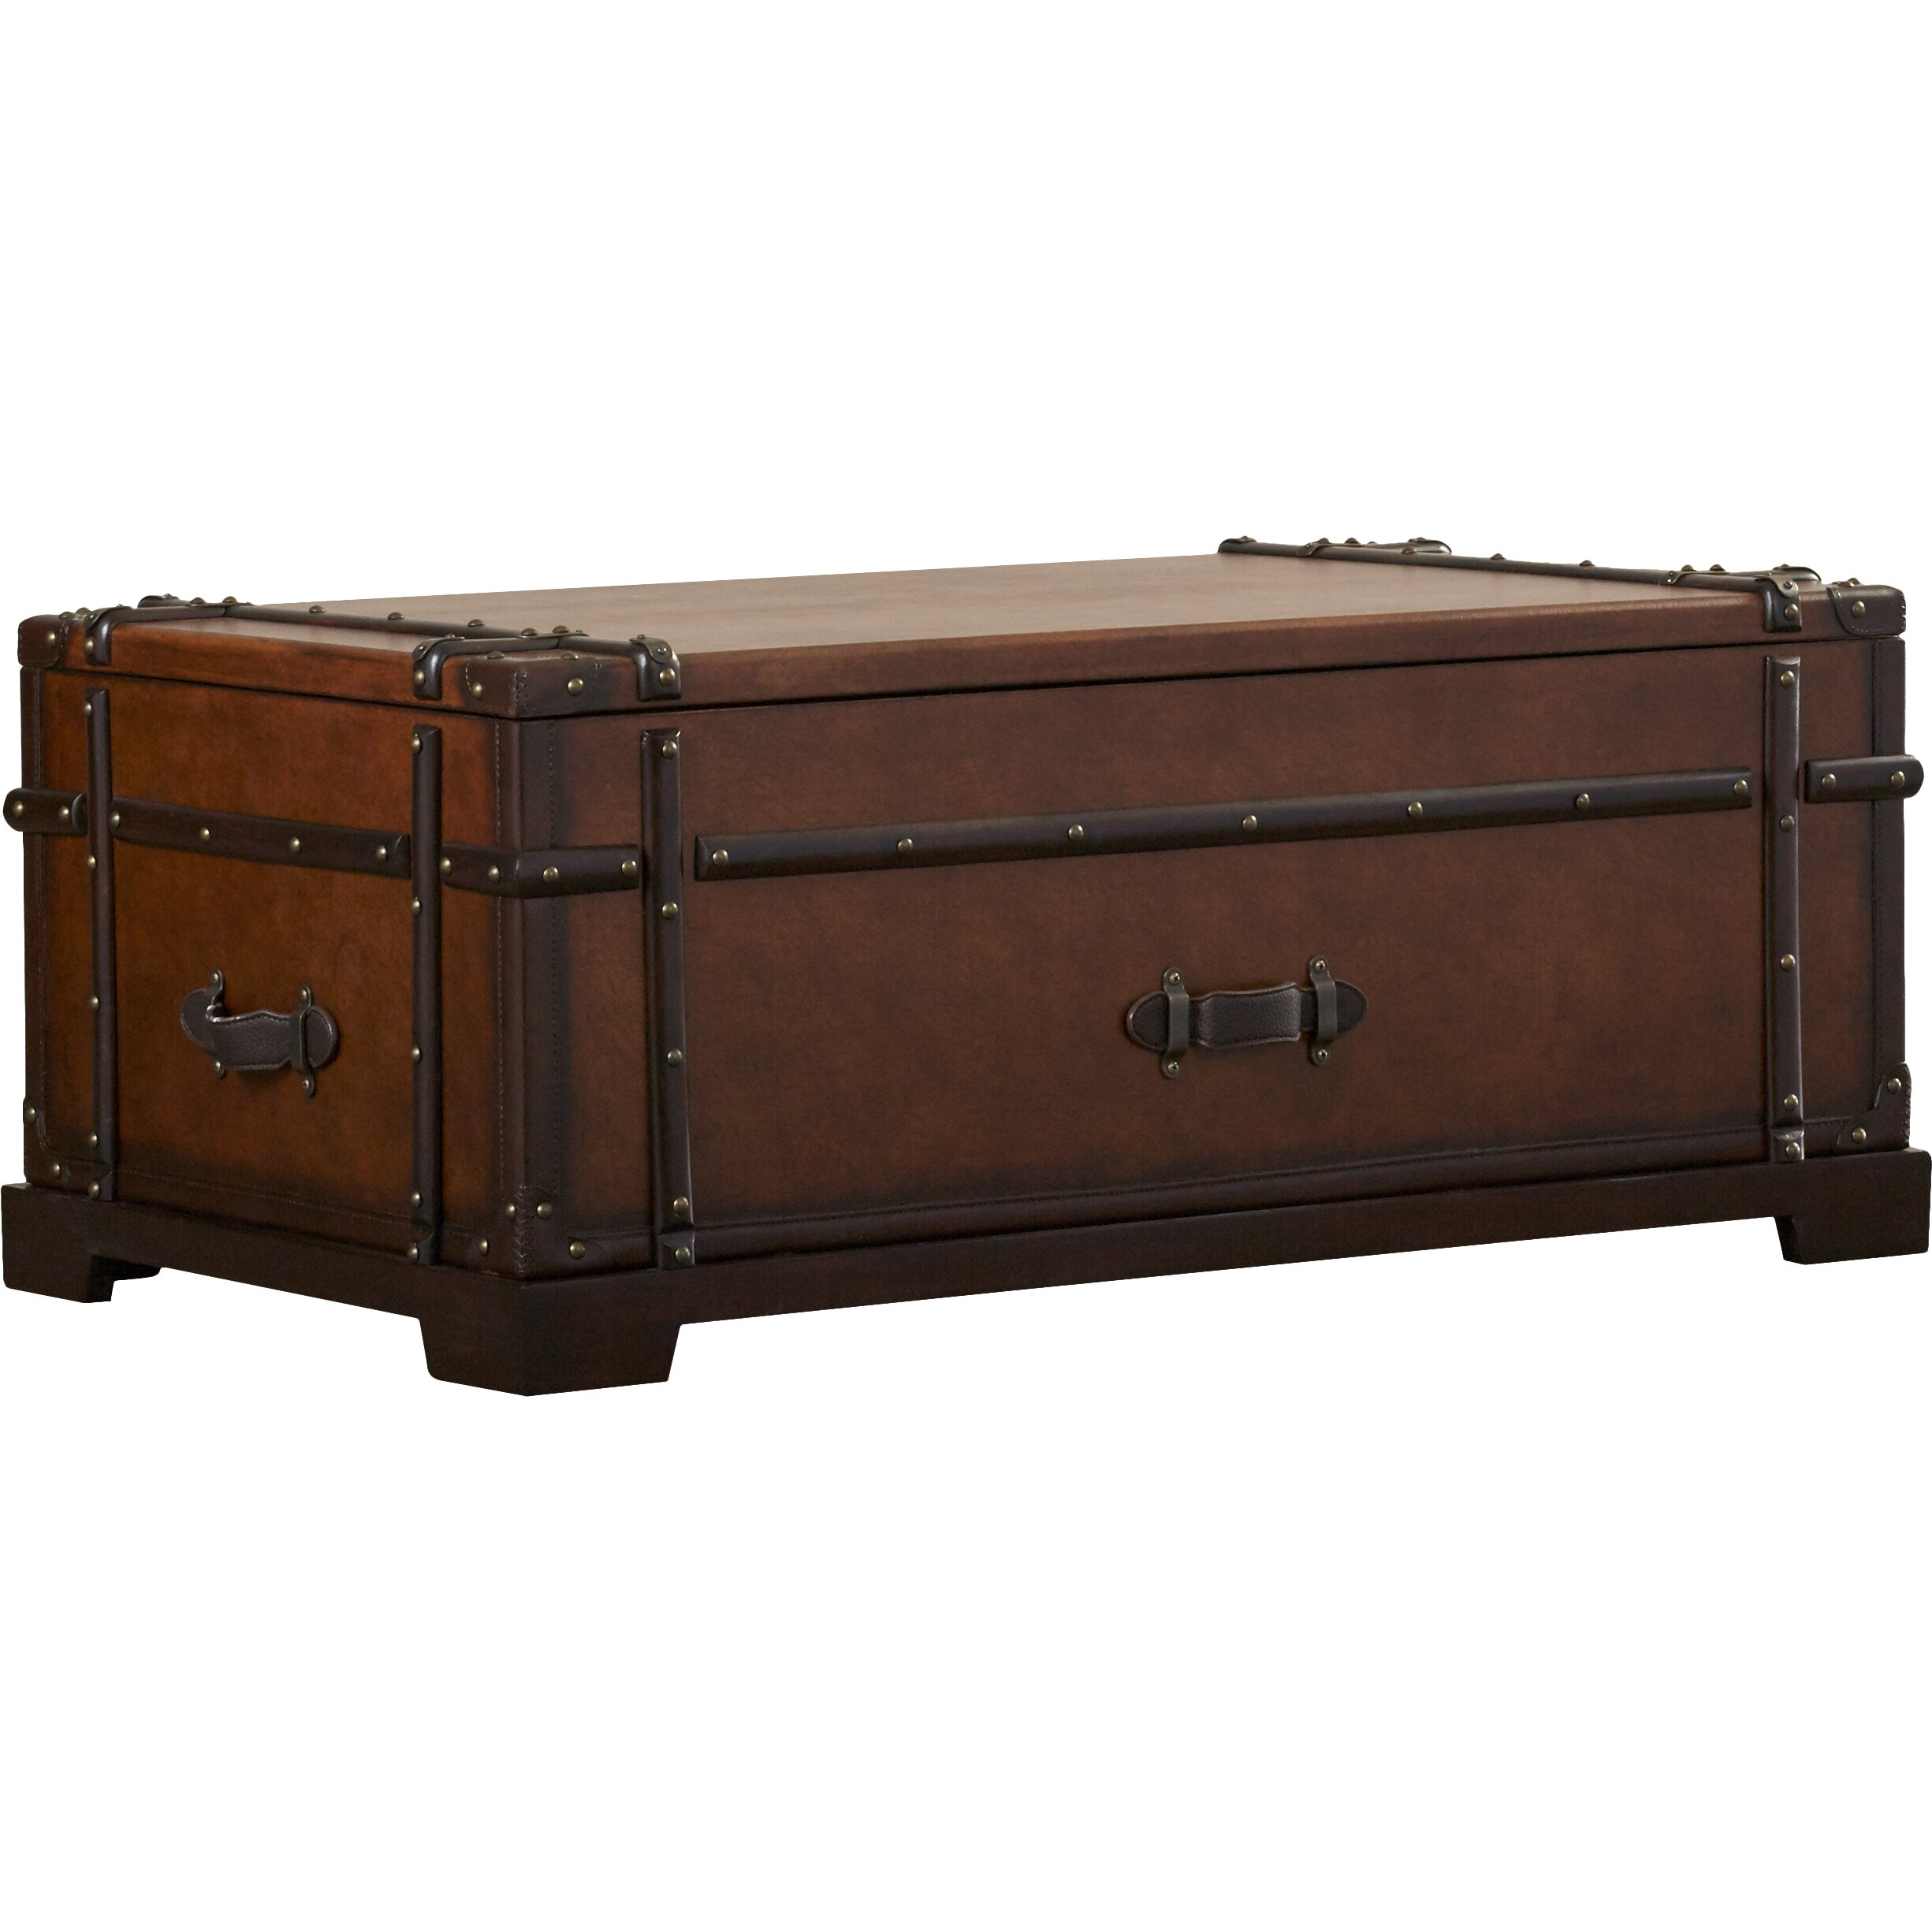 Barrett Trunk Coffee Table With Lift Top: Darby Home Co Delavan Steamer Coffee Table Trunk With Lift